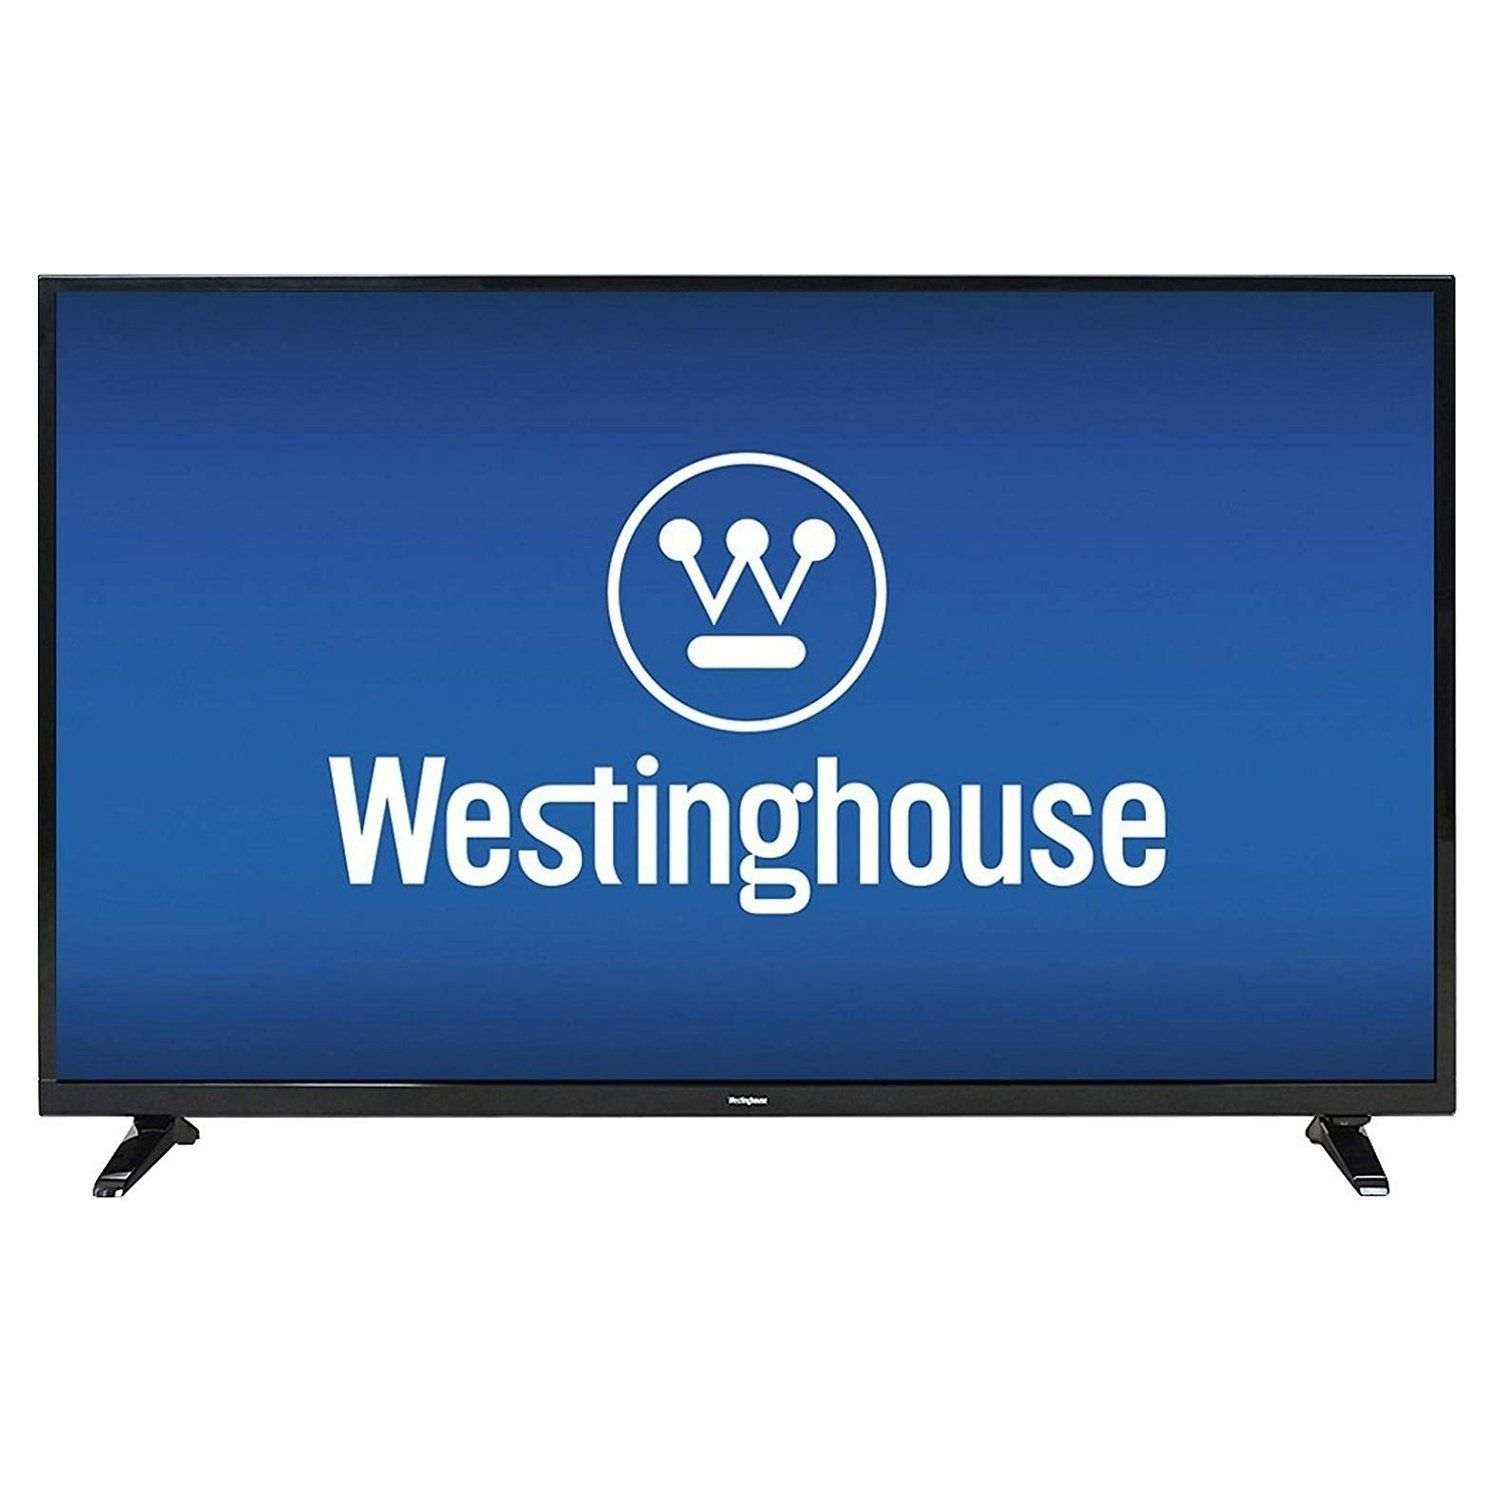 small resolution of refurbished westinghouse 50 in 4k smart uhd led tv with hdr n a n a black we50ub4417 rb